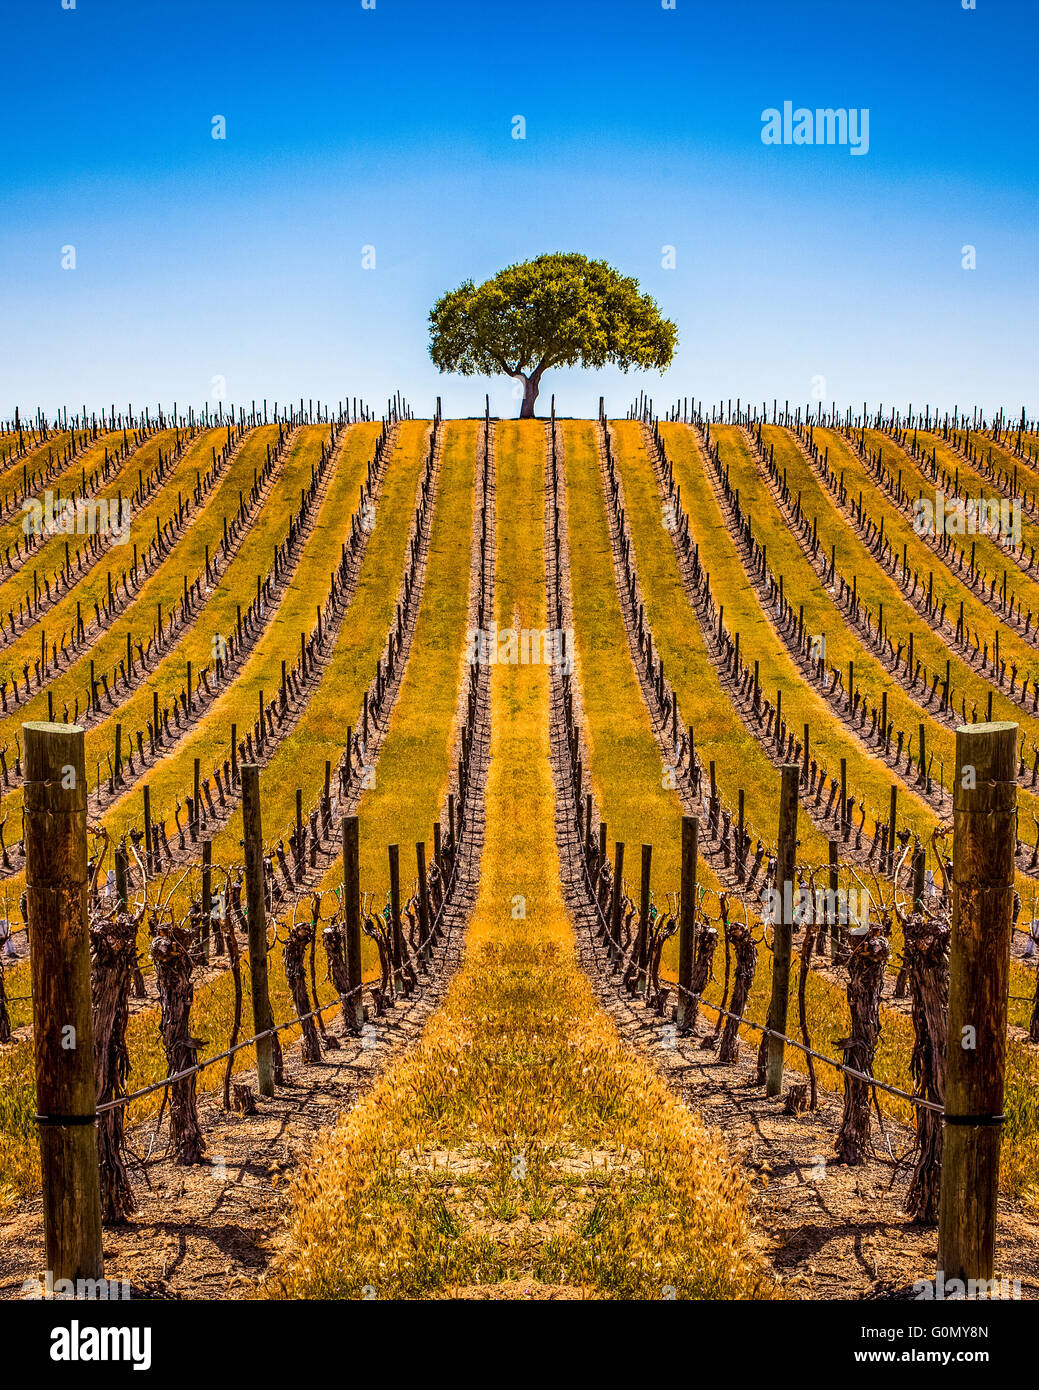 a-lone-tree-in-a-vineyard-in-paso-robles